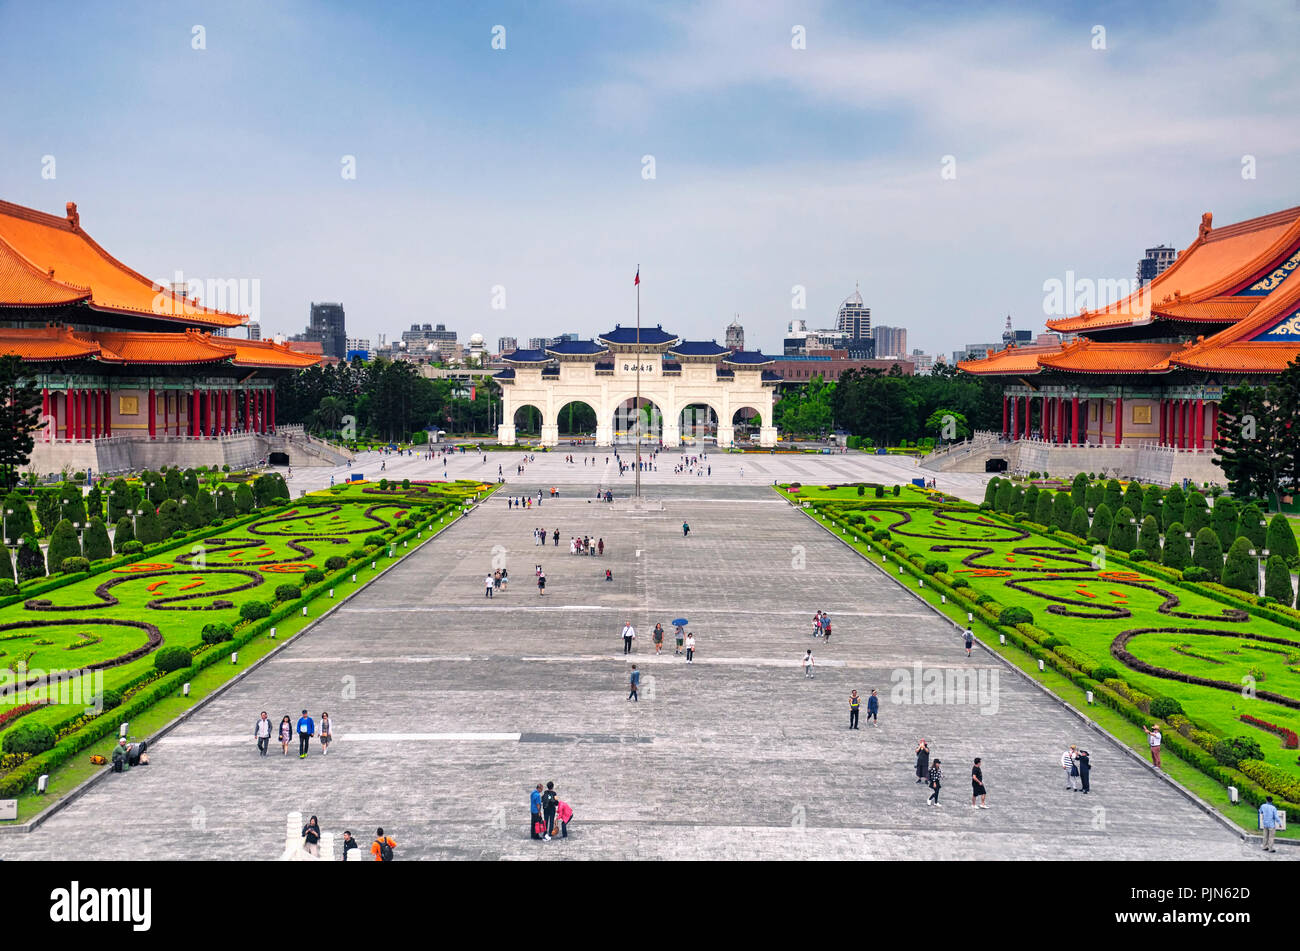 March 31, 2018. Taipei, Taiwan.  Tourists visiting liberty square near the national theater and concert halls in the city of Taipei, Taiwan. - Stock Image